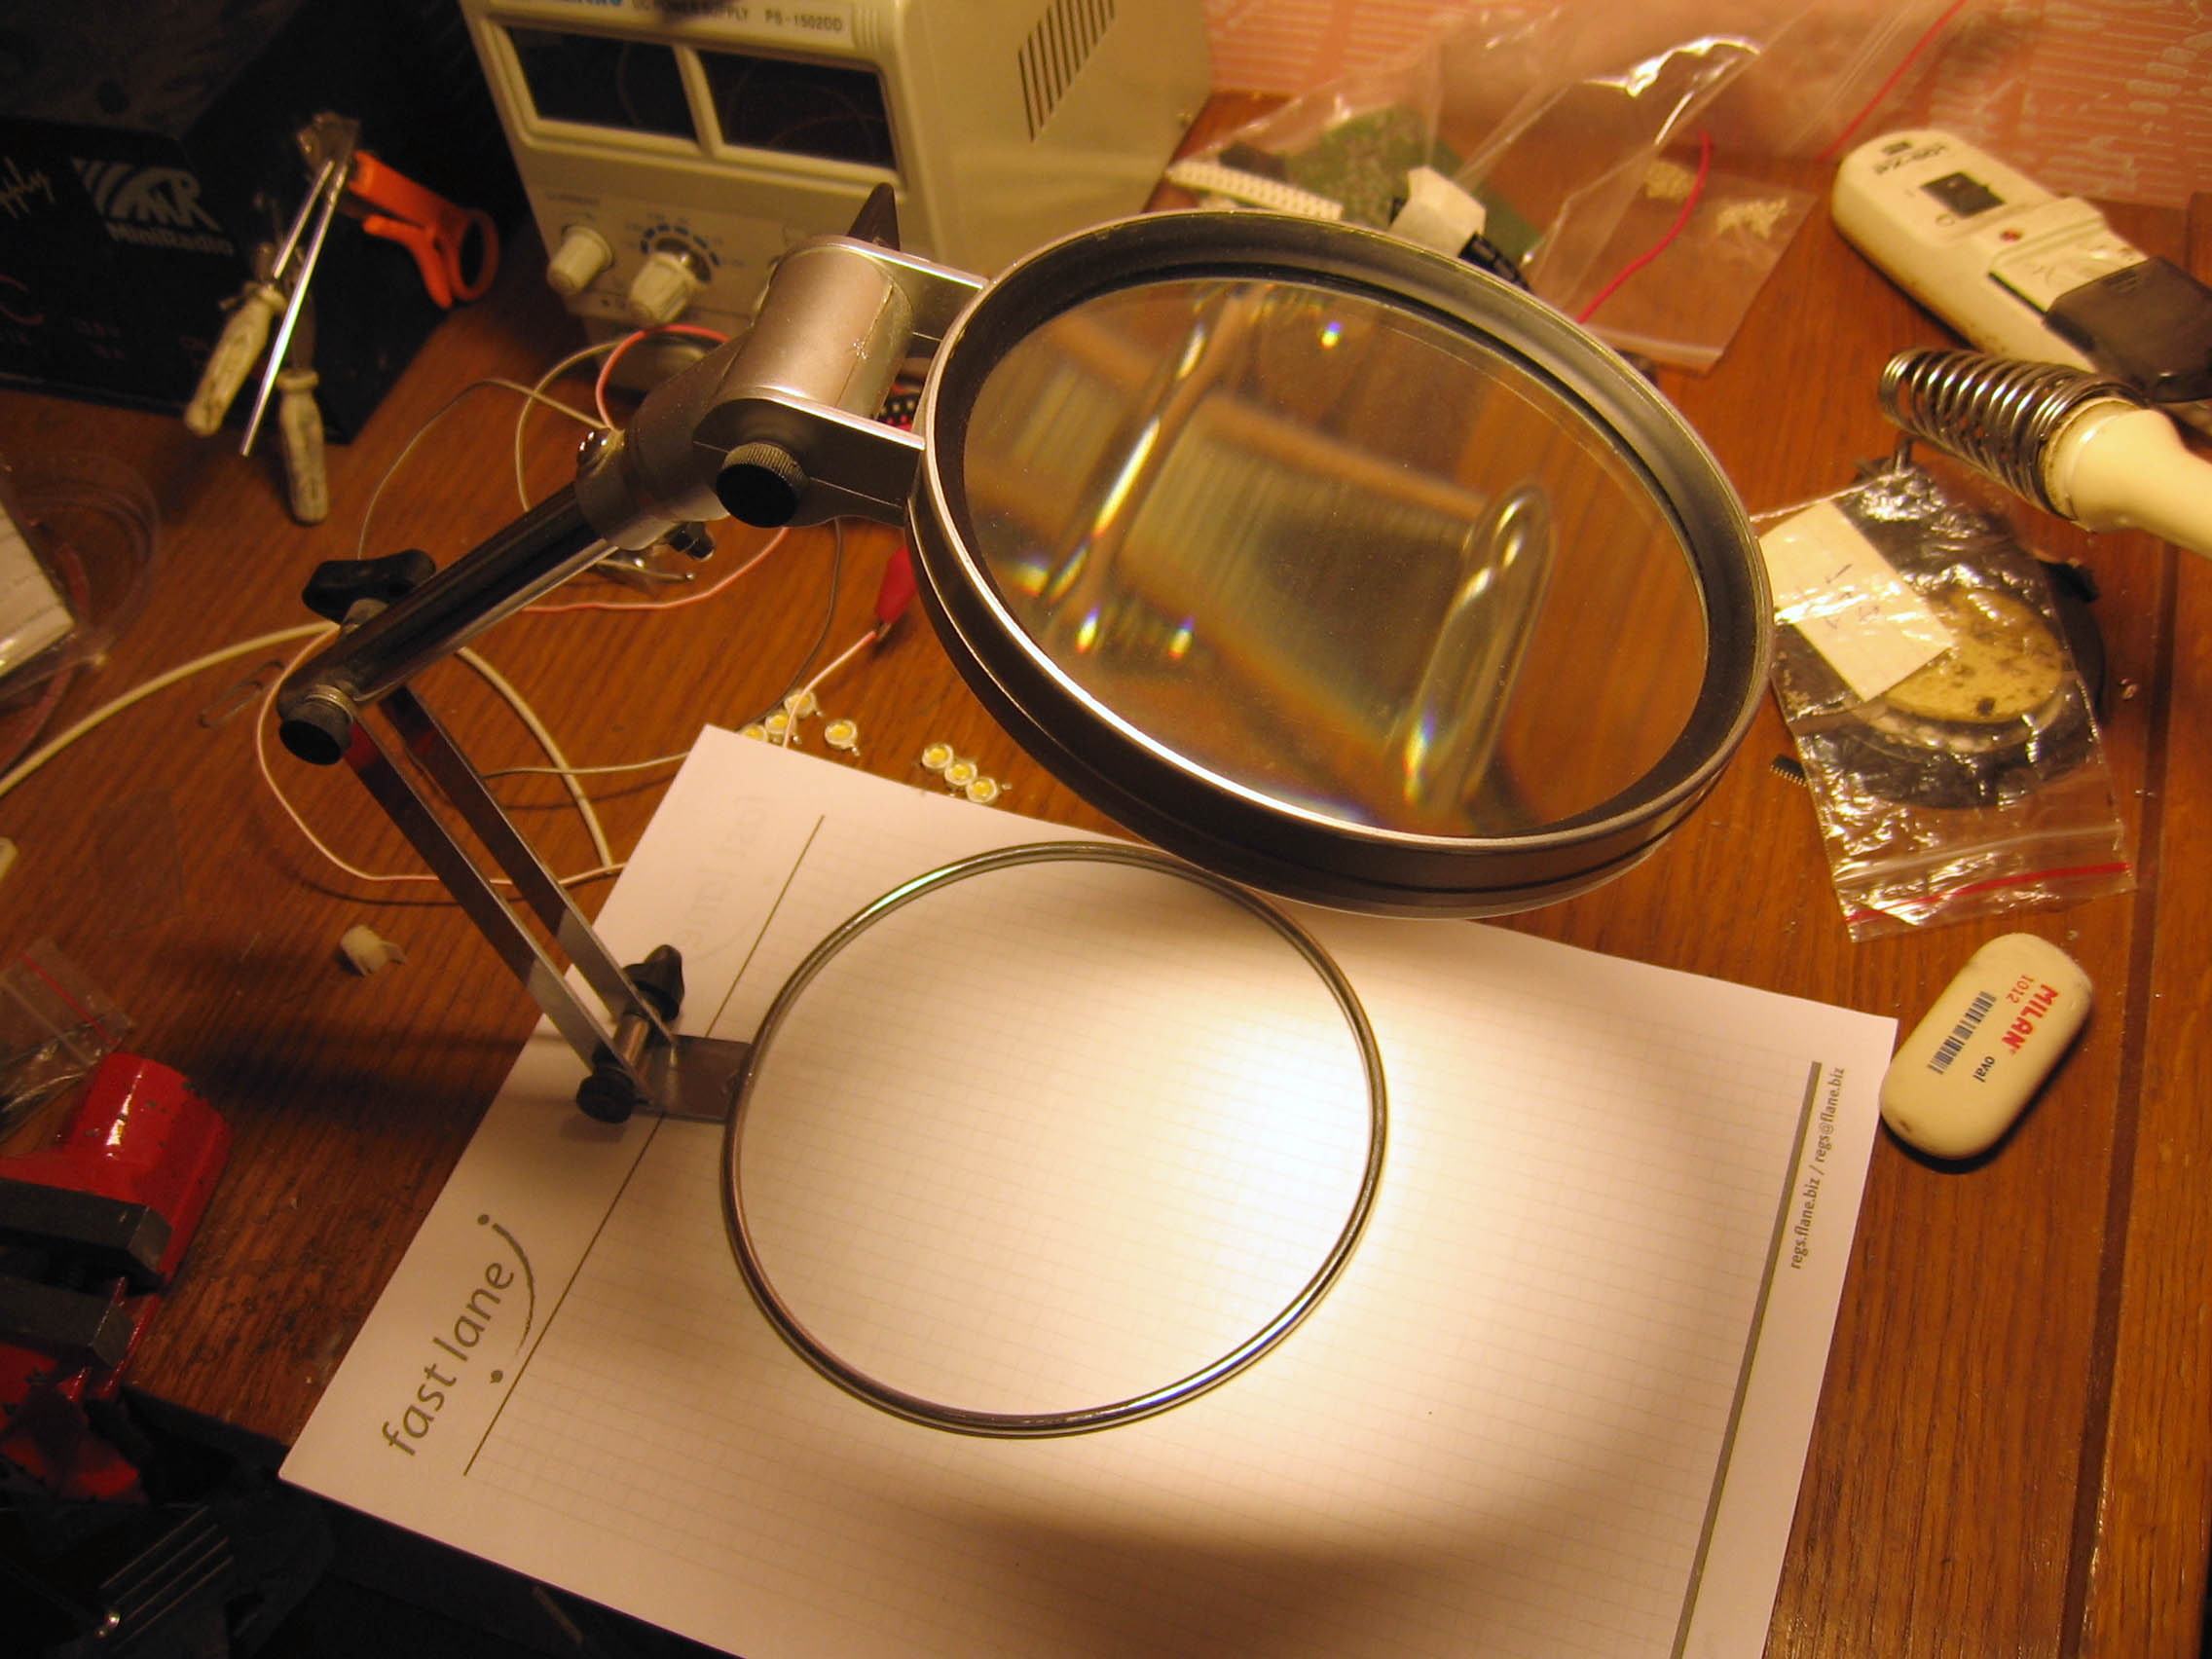 led-lamp-regulator-IMG 0955-lamp01